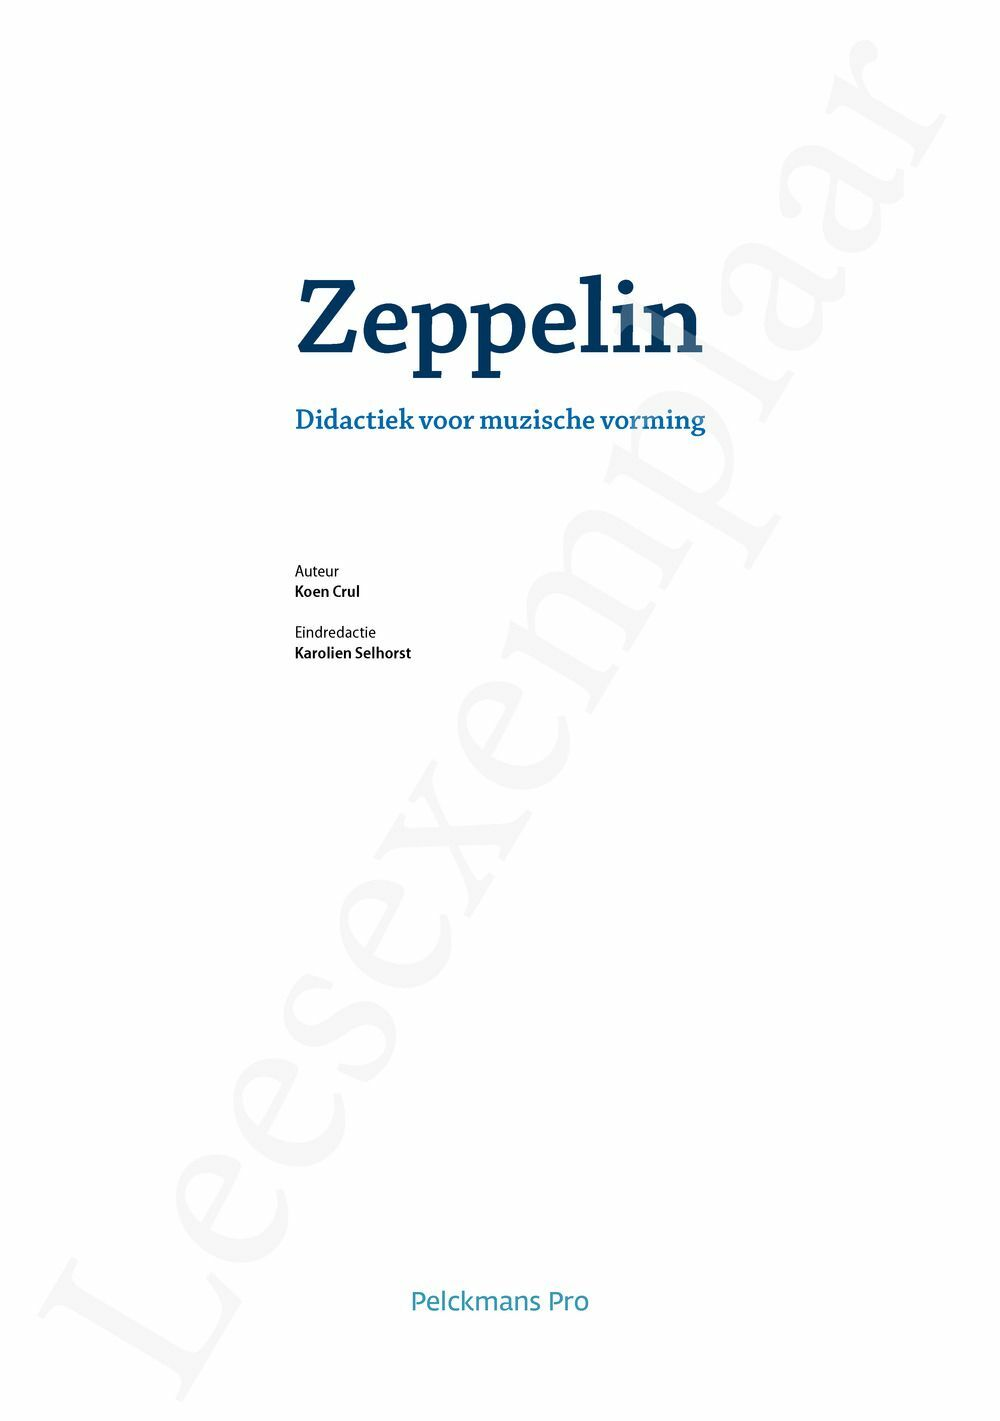 Preview: Zeppelin